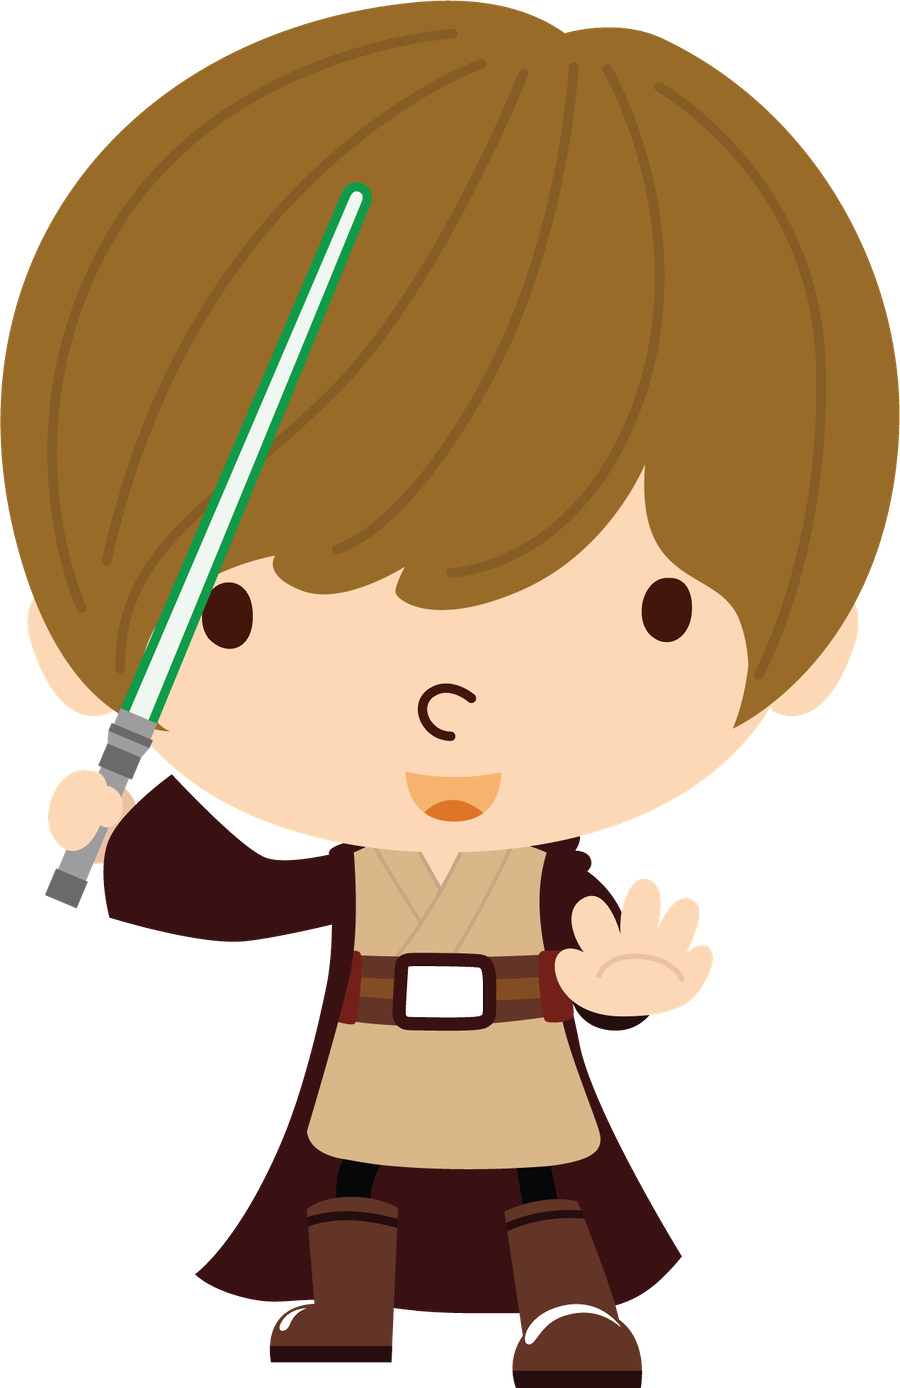 Star wars baby clipart freeuse stock Star Wars - Minus | already felt- characters 2 | Pinterest | Star ... freeuse stock